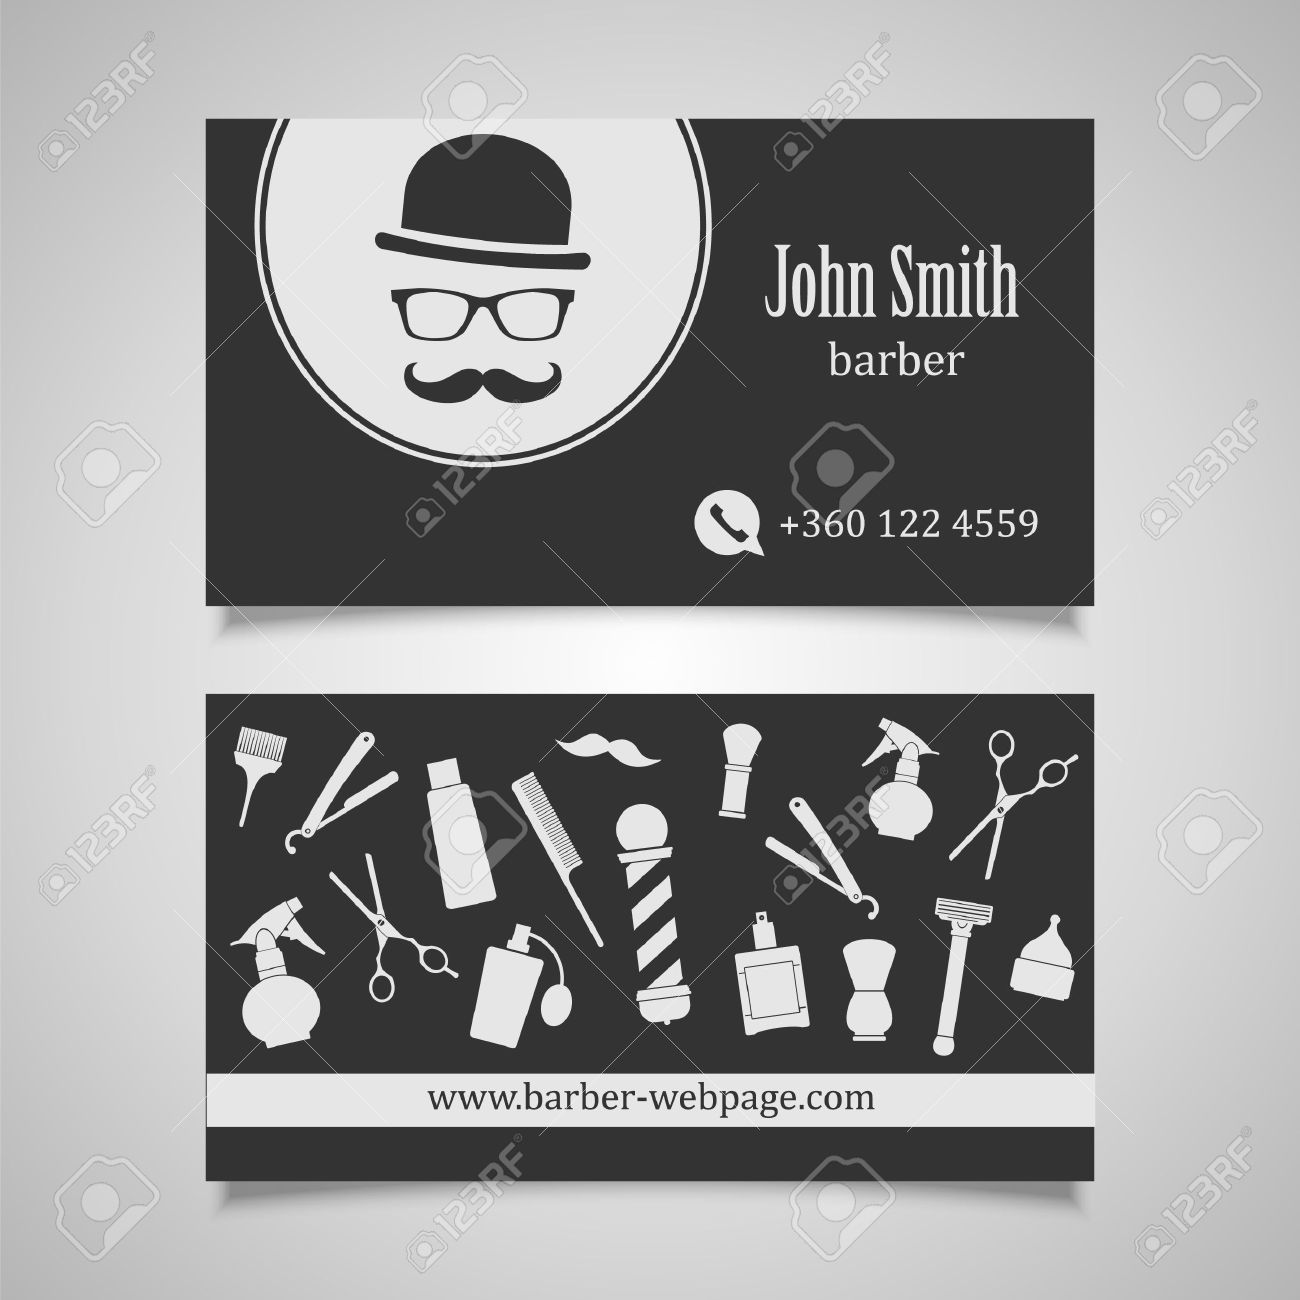 Business cards hair stylist image collections free business cards hair salon barber shop business card design template royalty free hair salon barber shop business card magicingreecefo Image collections